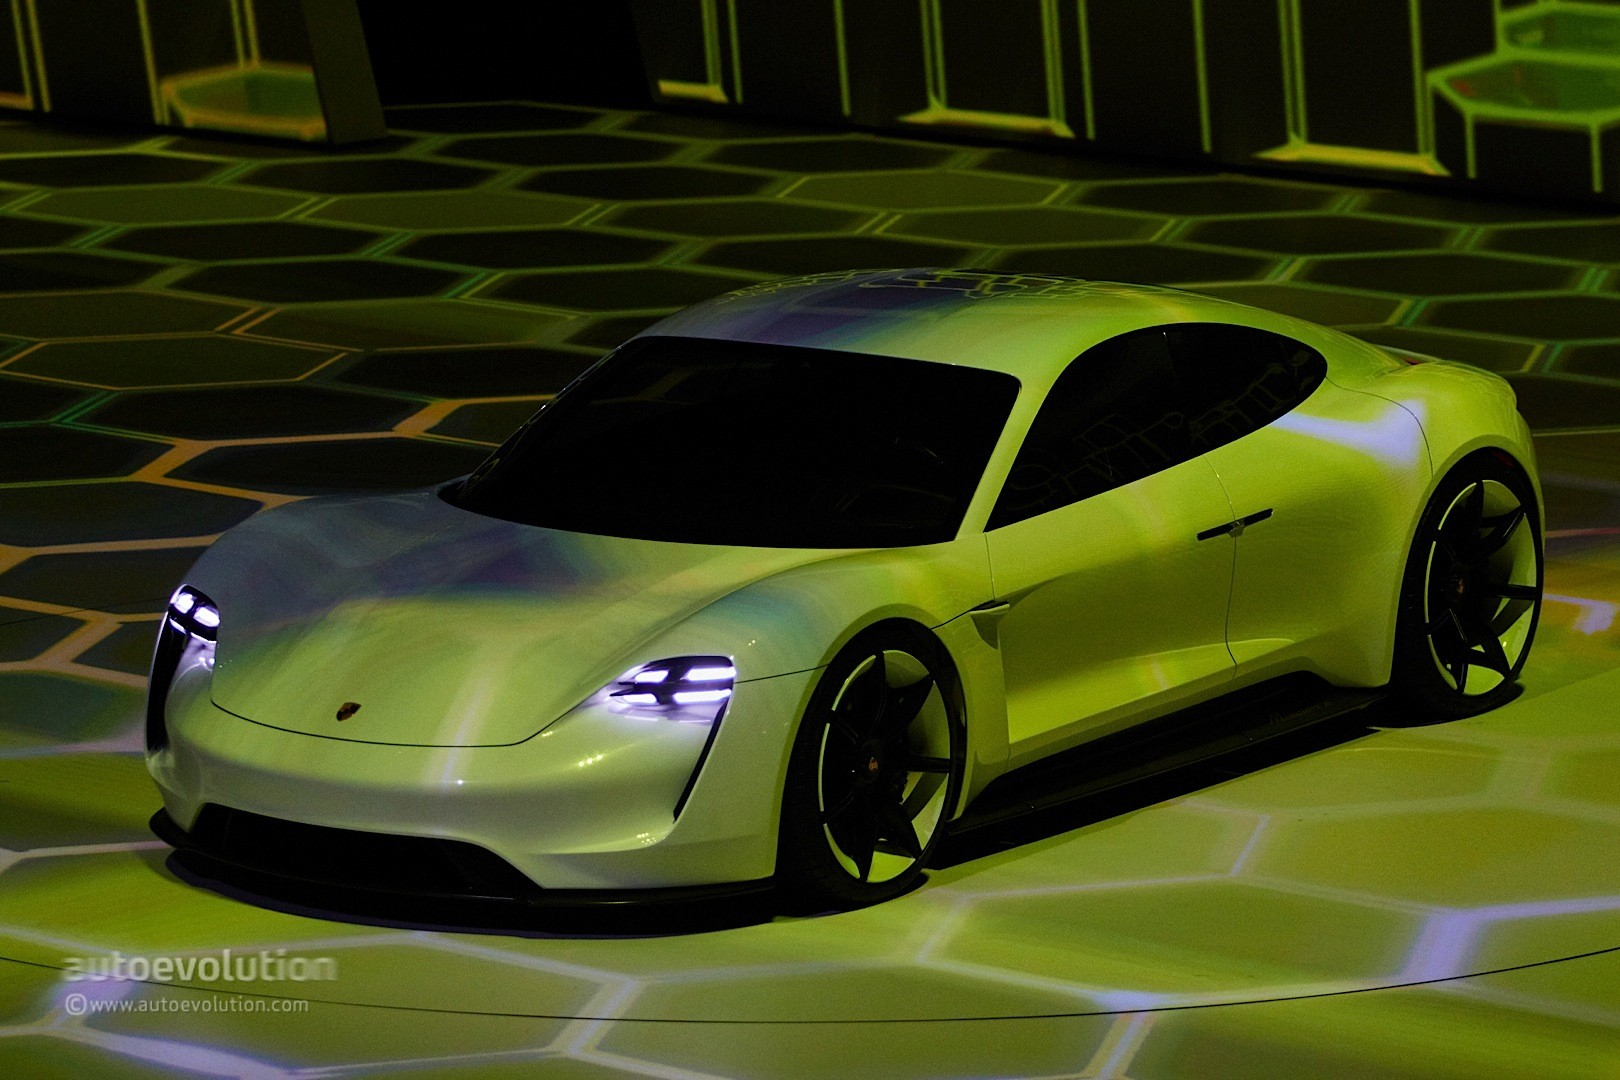 porsche mission e renamed taycan electric car to launch in 2019 autoevolution. Black Bedroom Furniture Sets. Home Design Ideas